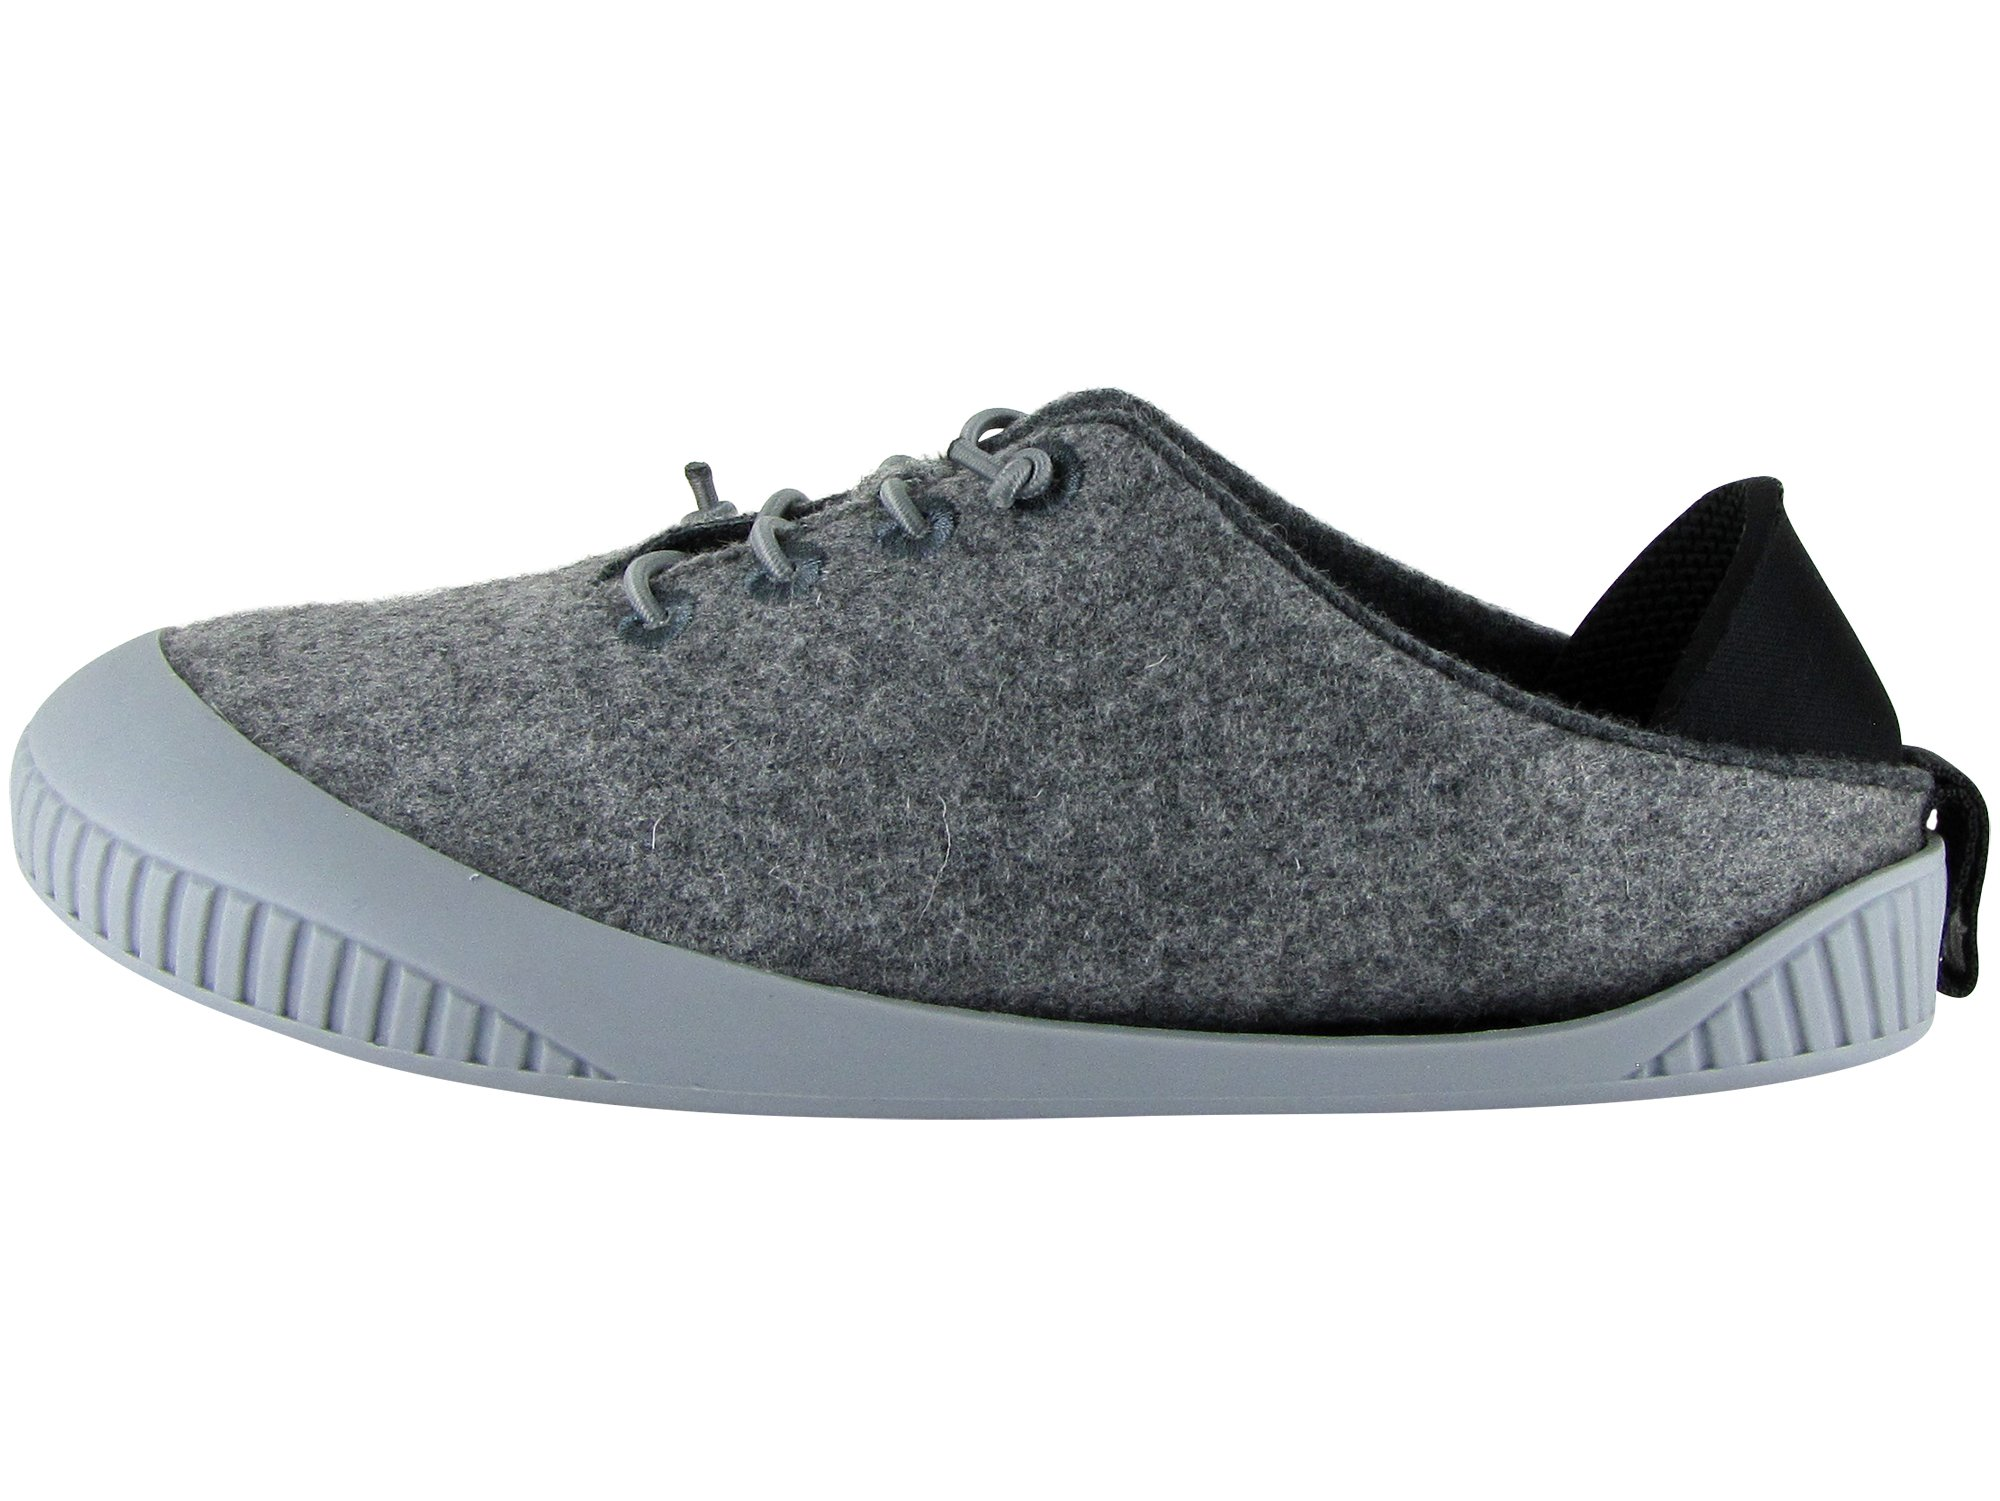 Dualyz Fit Unisex 100% Wool Slipper Shoe with Removable Sole